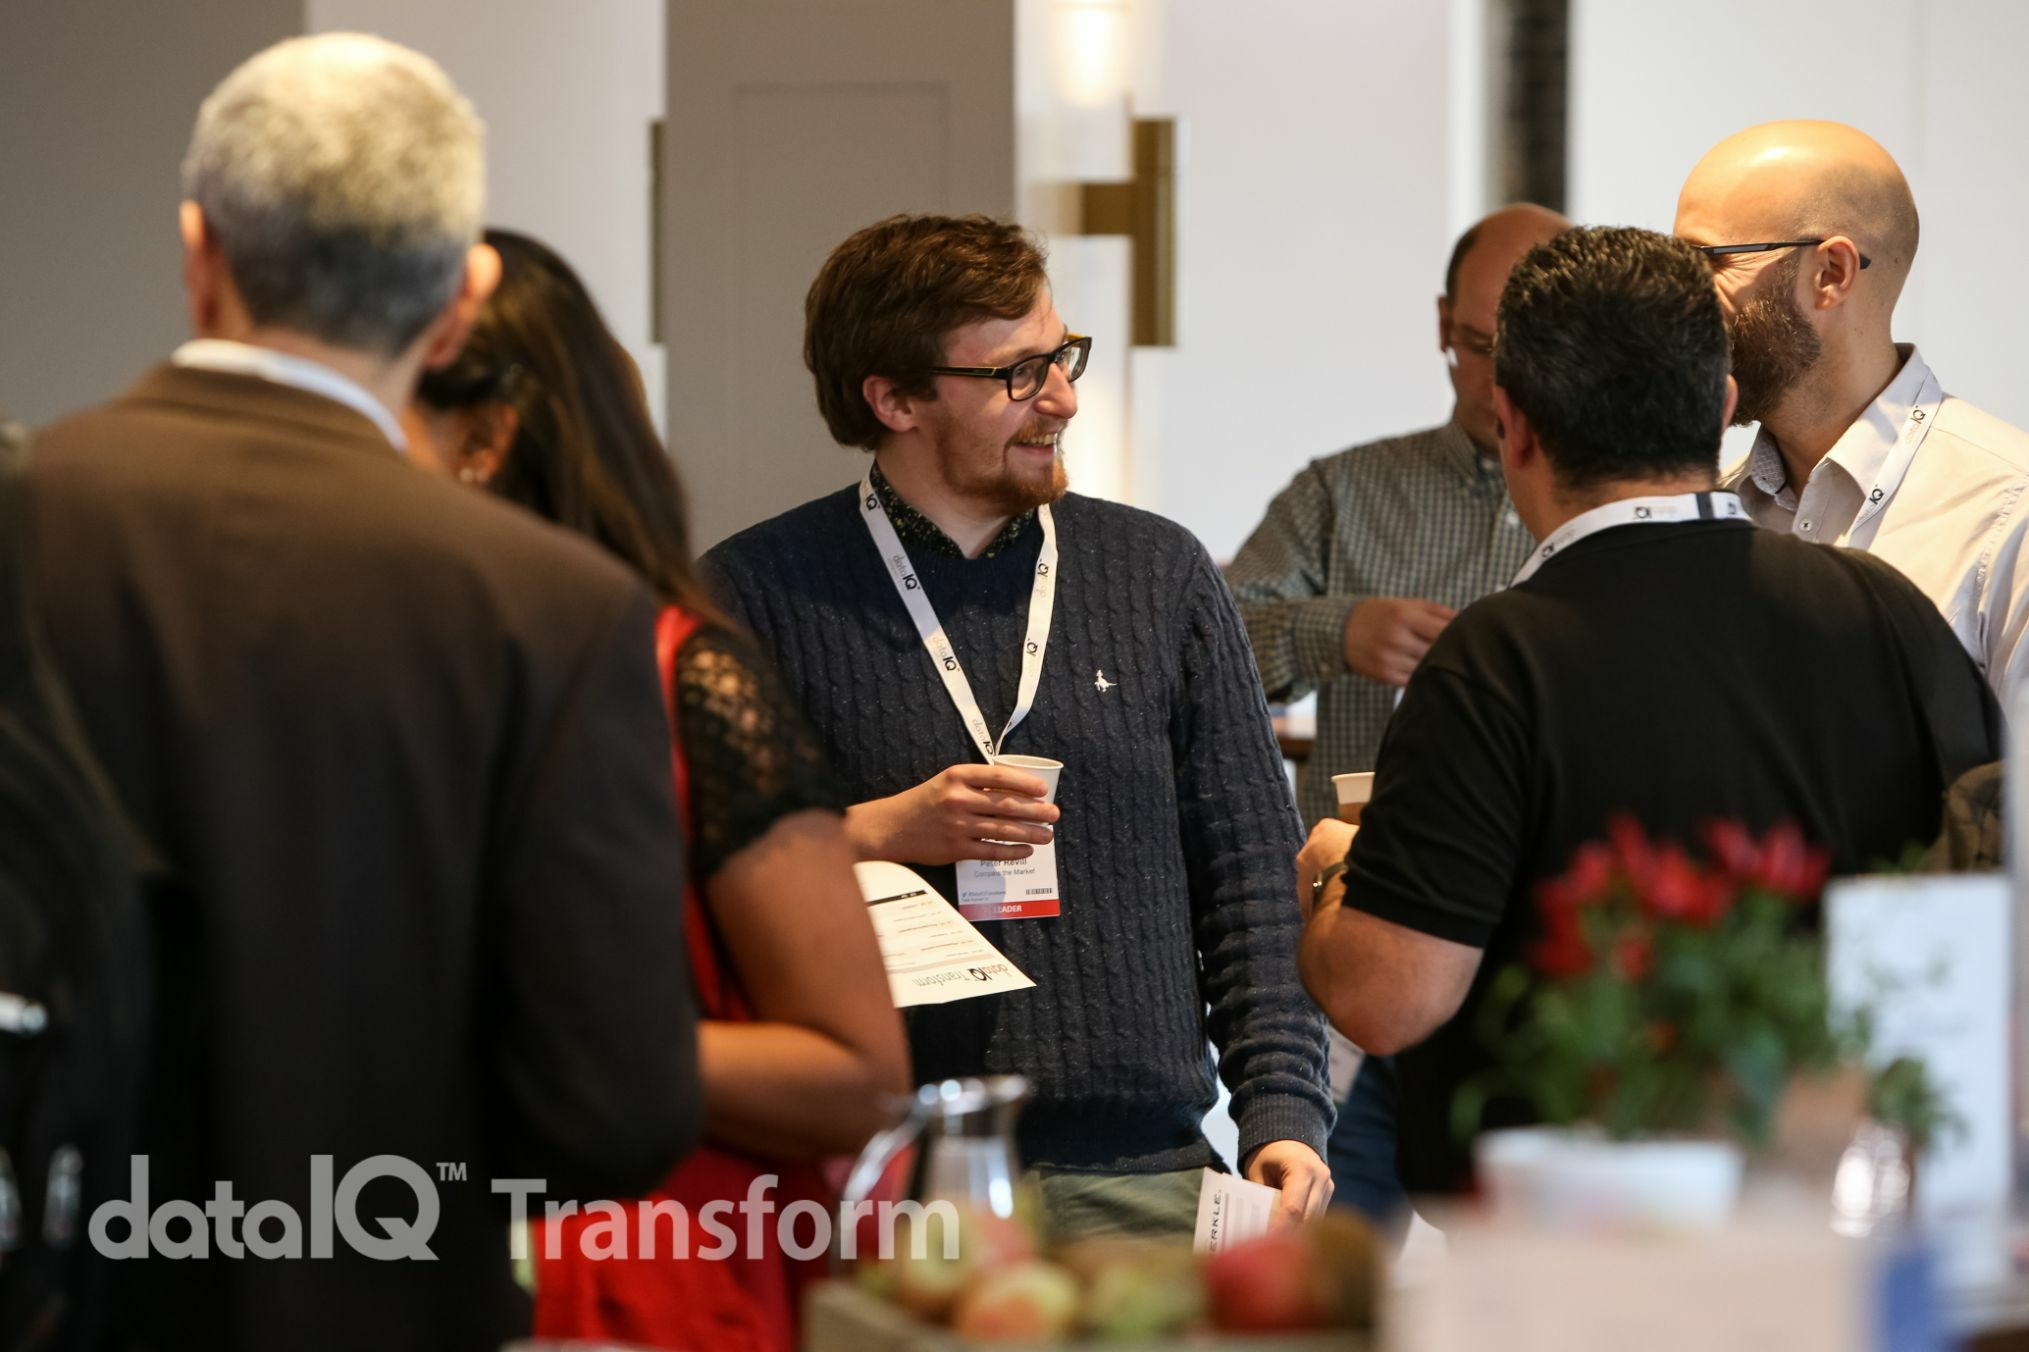 DataIQ Transform 2019 Image 33